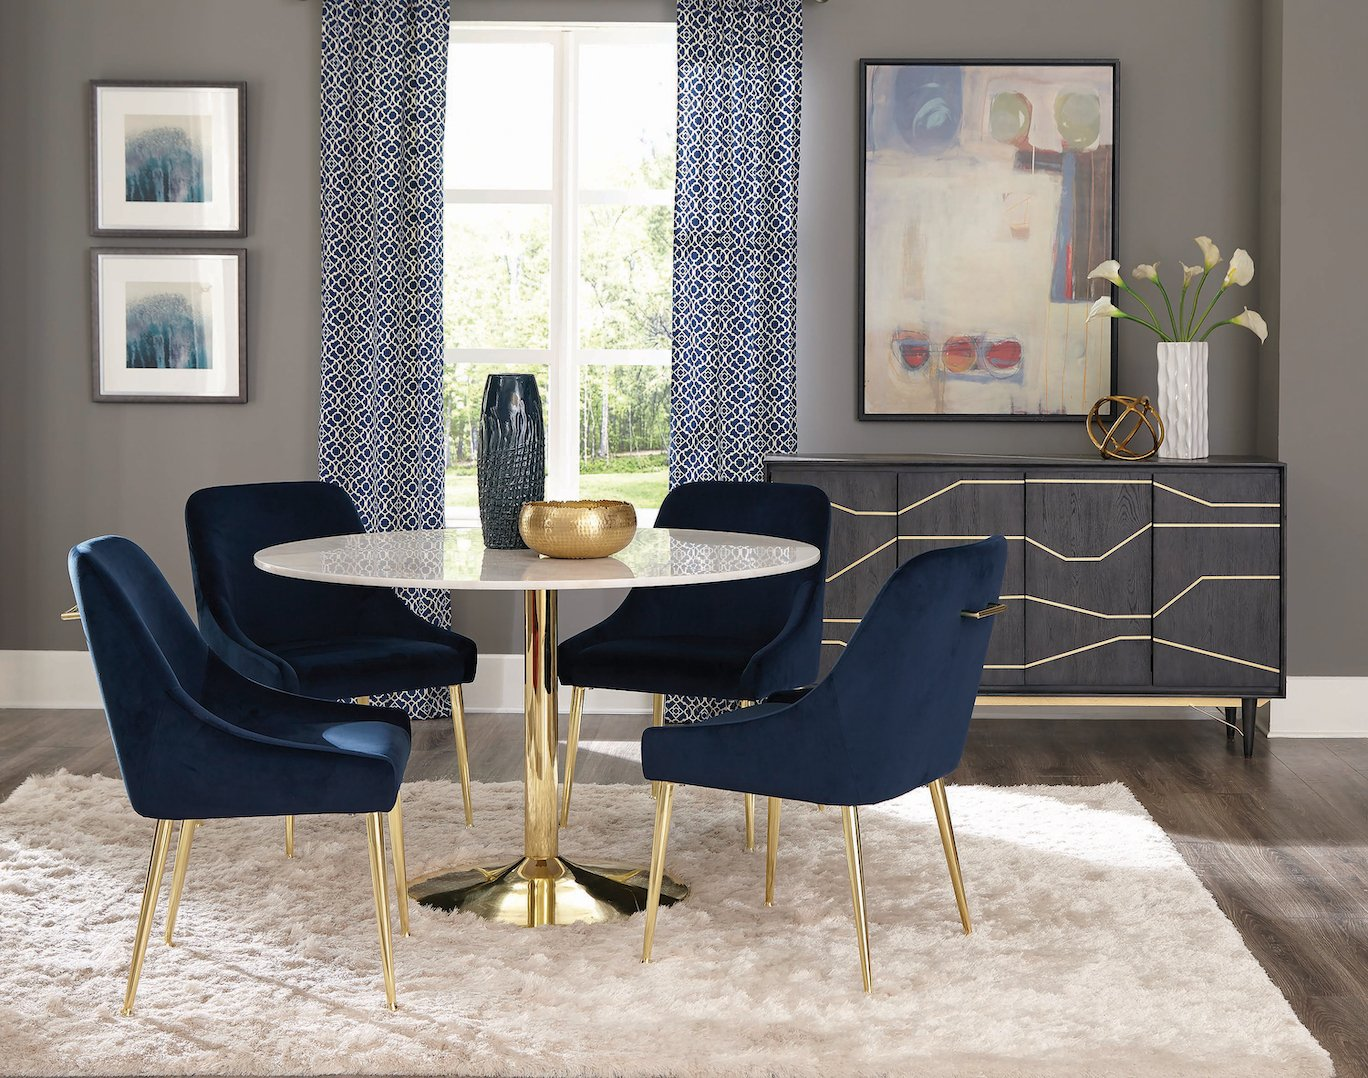 Coaster Kella Round Dining Table Natural Marble And Gold White With Blue Velvet Chairs Glame Houston Furniture La Sierra Furniture